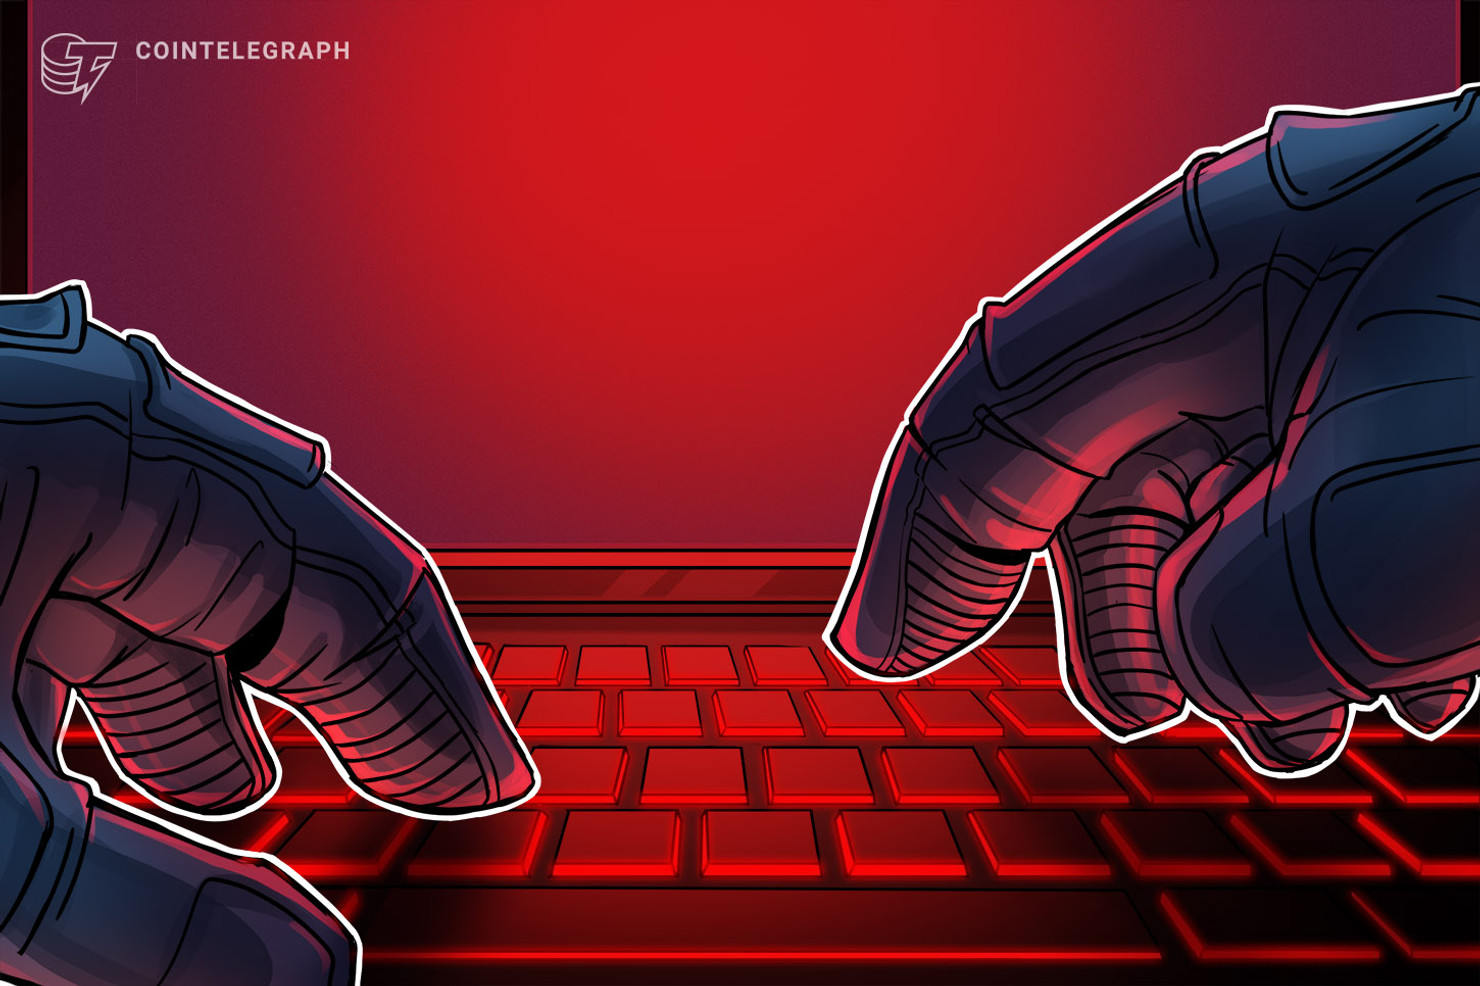 Maze Hacker Group Claims Infecting Insurance Giant Chubb with Ransomware